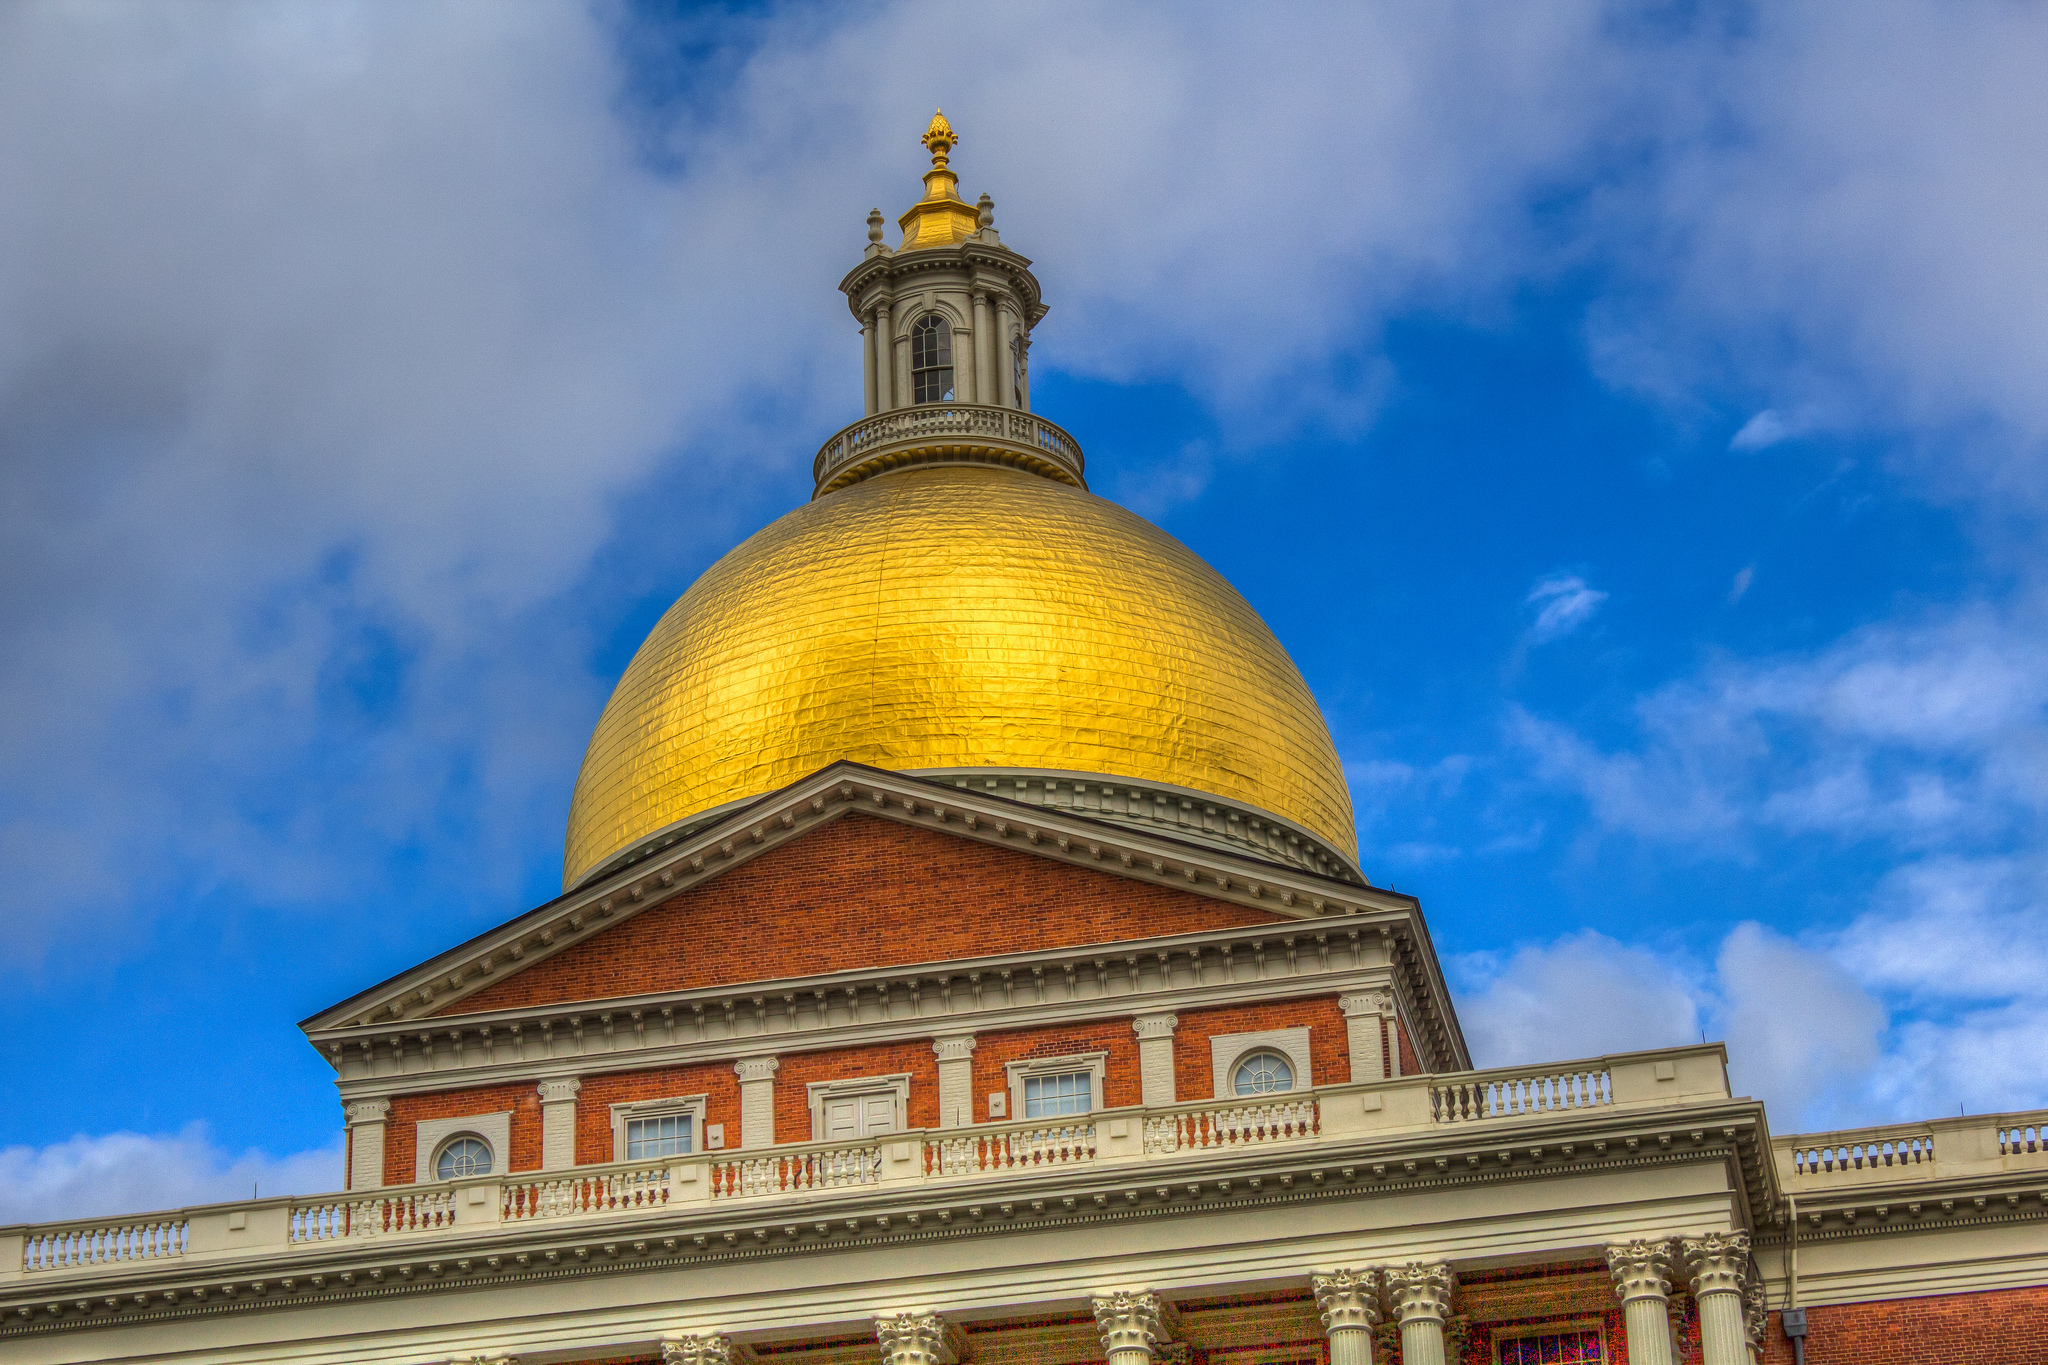 The dome of the Massachusetts State Capitol